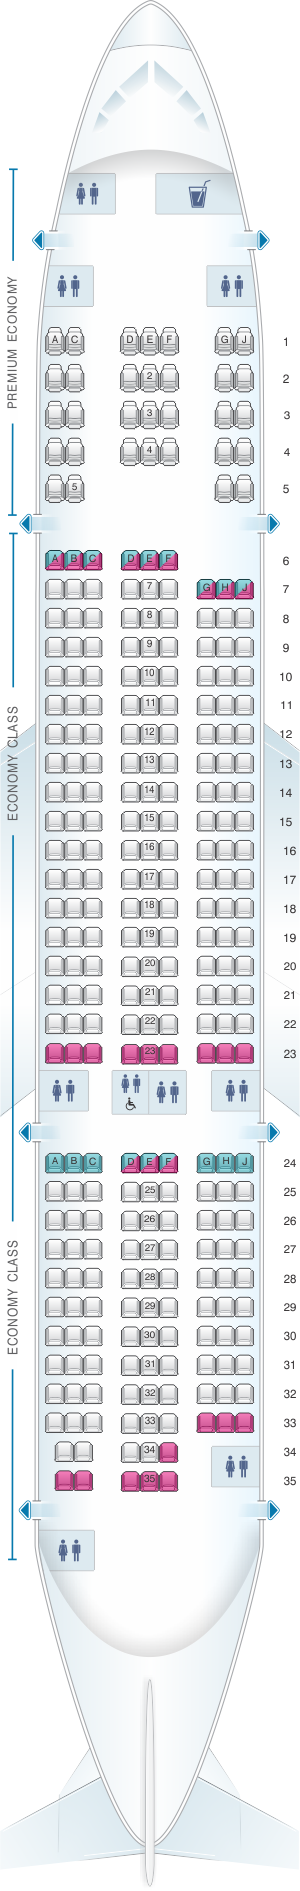 Seat map for Norwegian Boeing B787 8